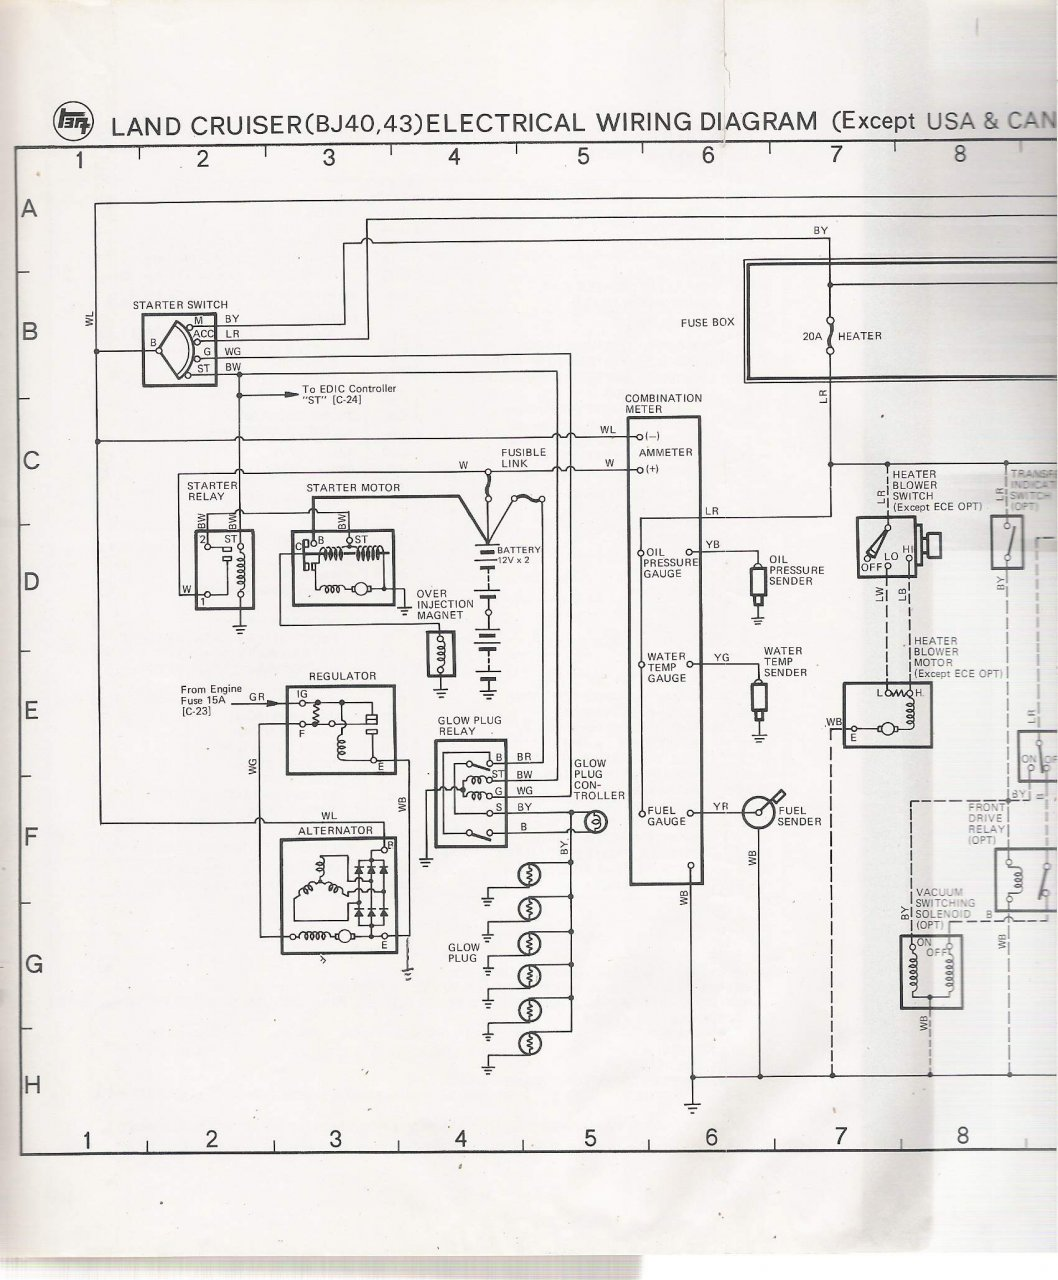 1977 fj40 wiring diagram electric motor symbols electrical schematic for 78 bj40 lhd ih8mud forum